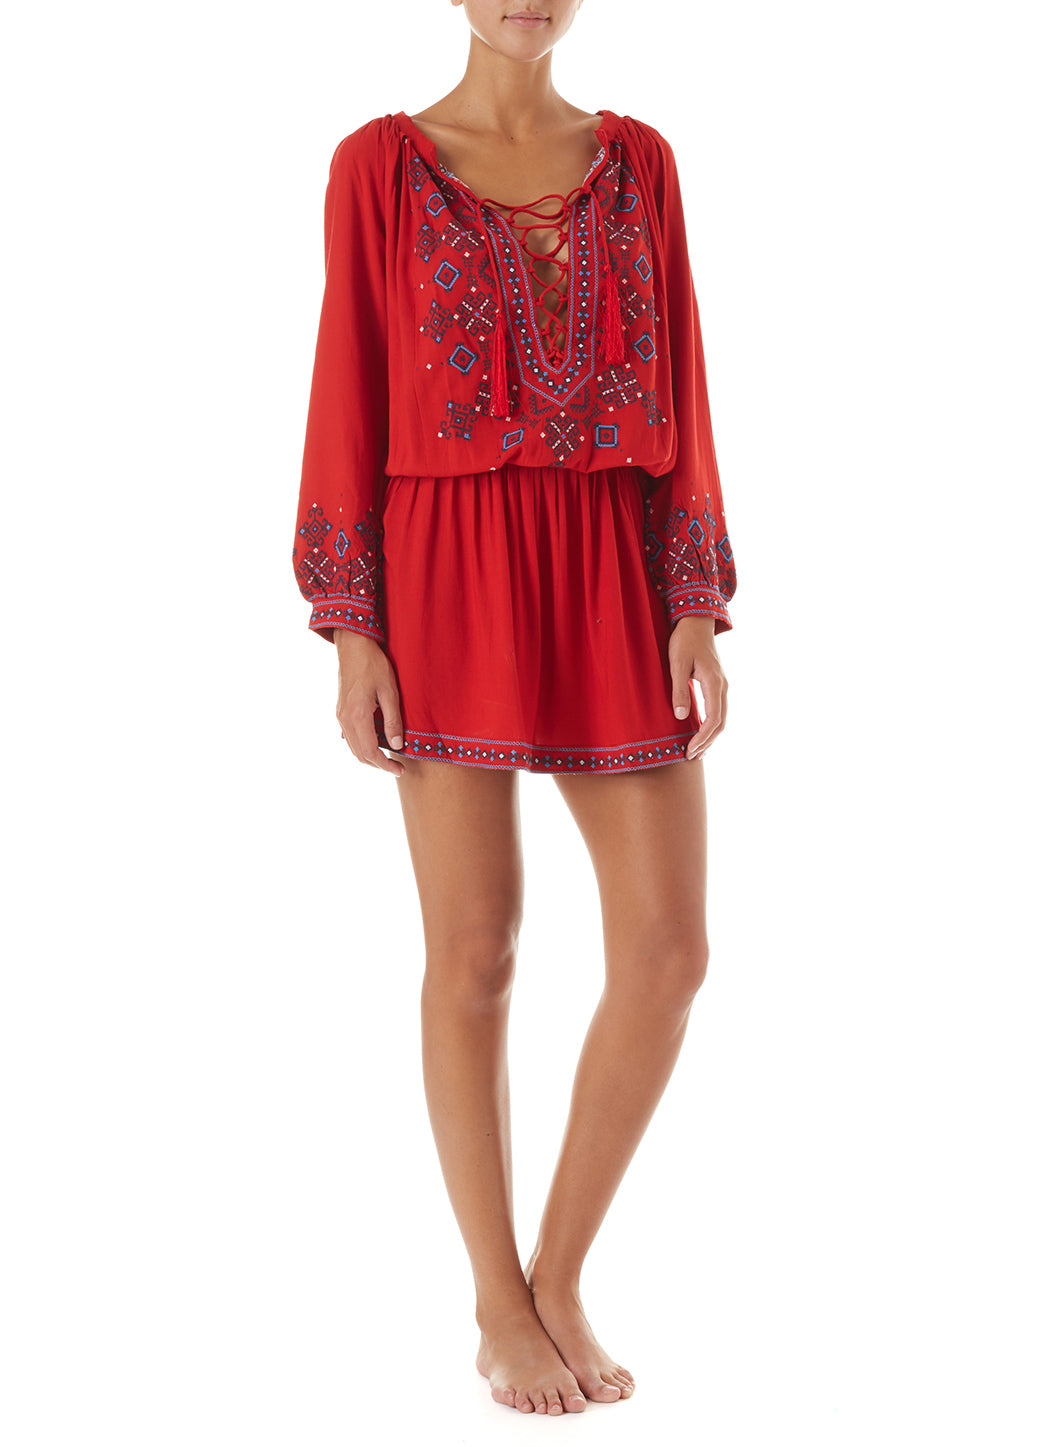 Nadja Red Embroidered Short Dress